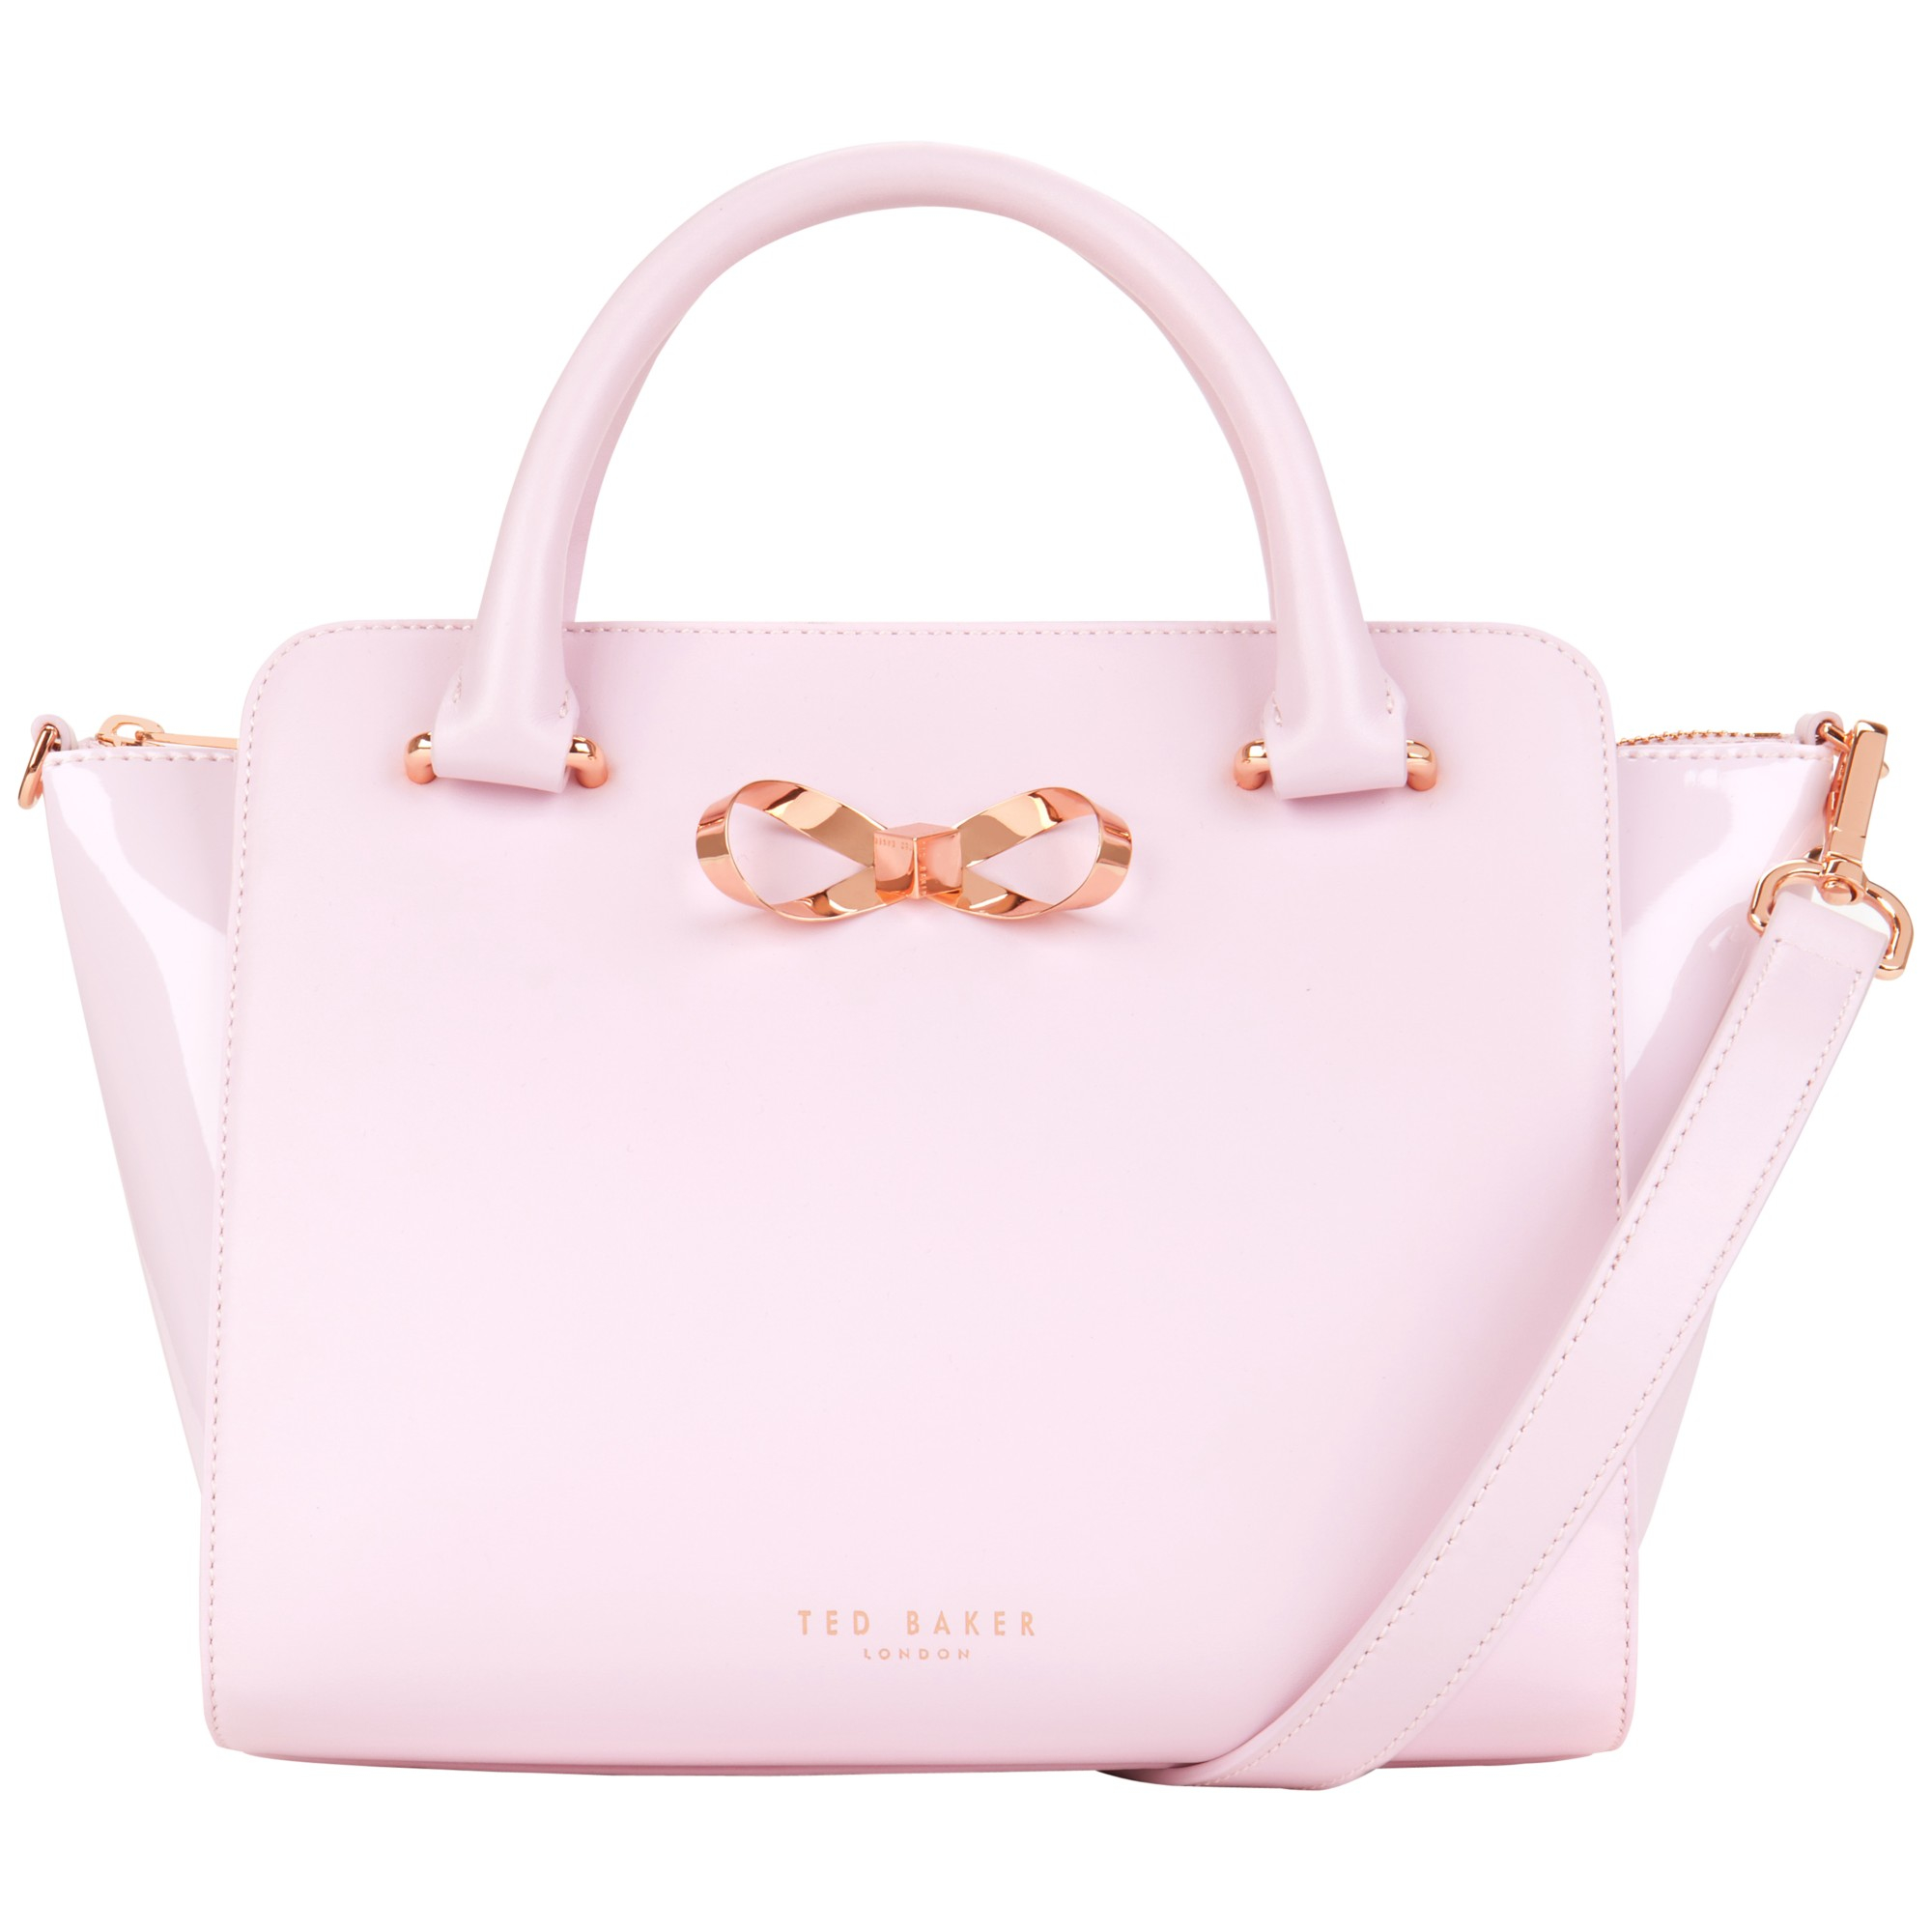 59b525acdc84 Ted Baker Paiton Bow Leather Tote Bag in Pink - Lyst